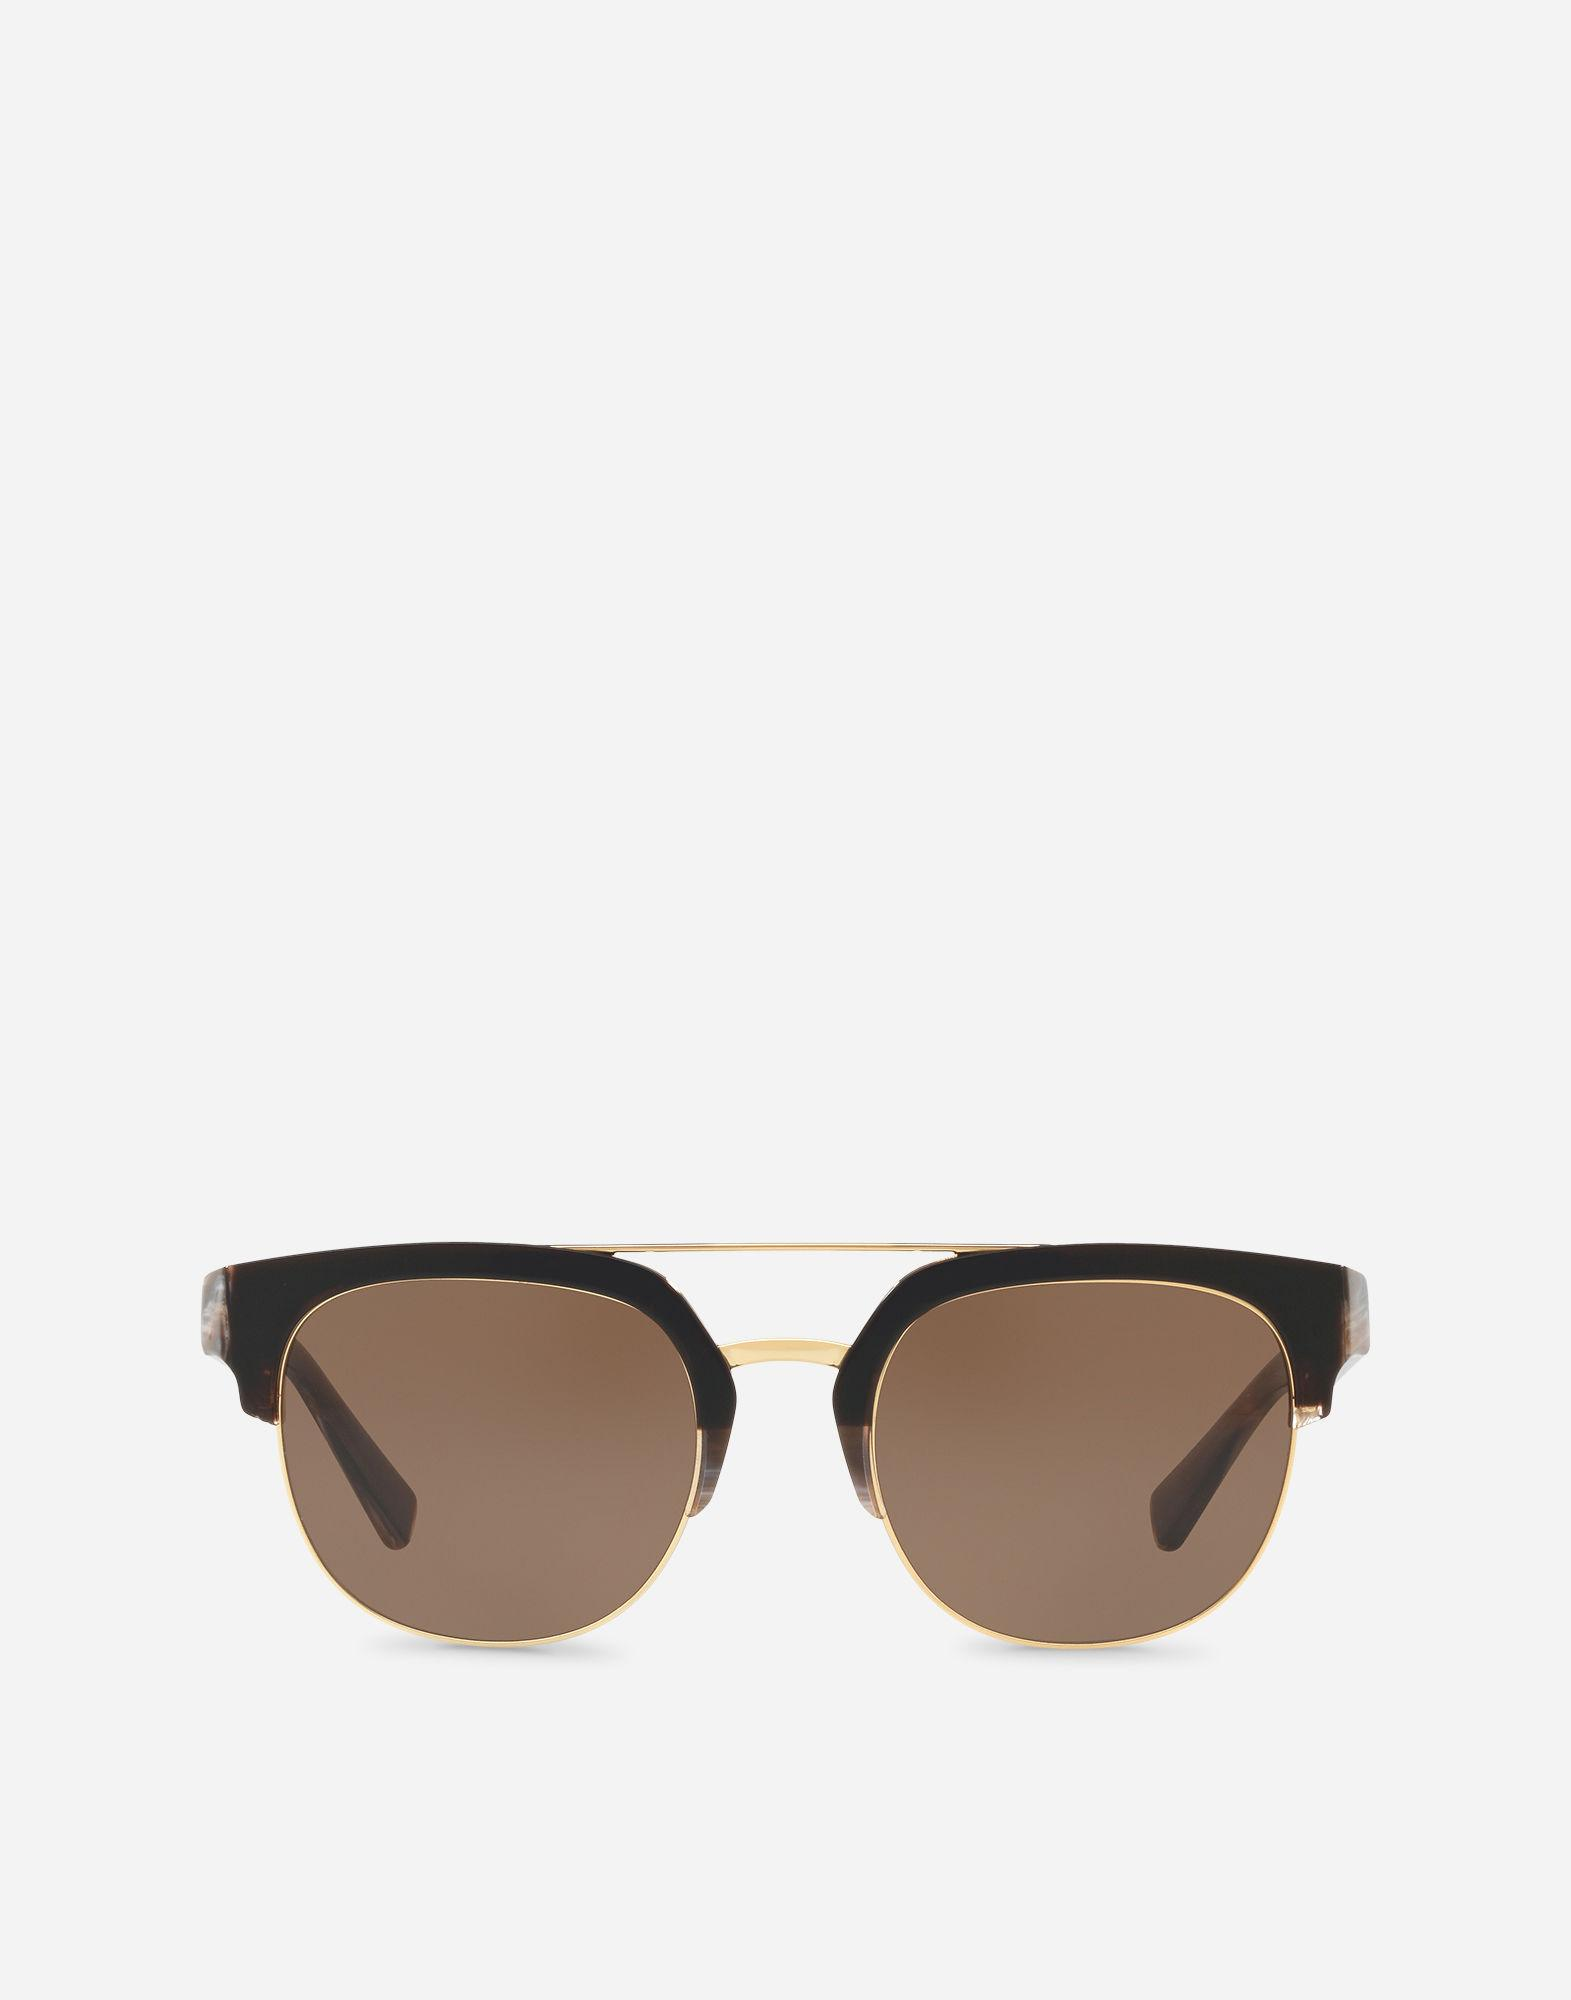 58590b0002a6 Lyst - Dolce   Gabbana Square Sunglasses With Double Bridge In Metal ...